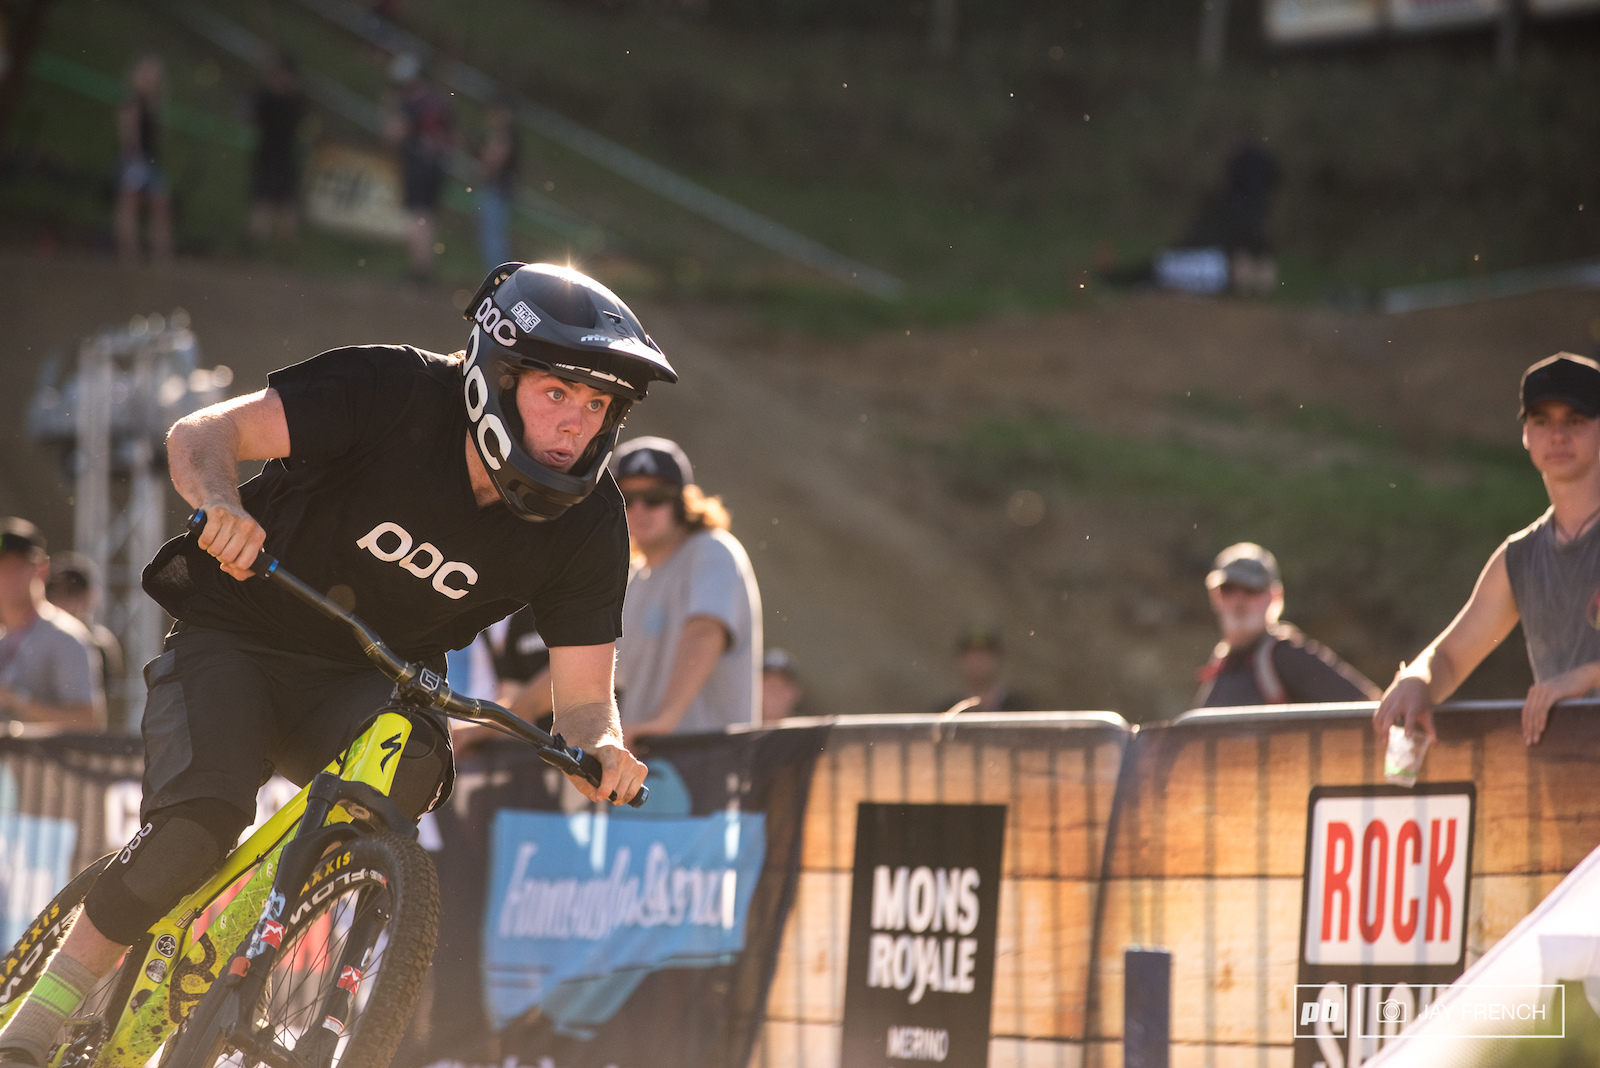 One of the three New Zealanders to make it in to the 1 8th final Keegan was keen to get more points toward a potential King of Crankworx title.